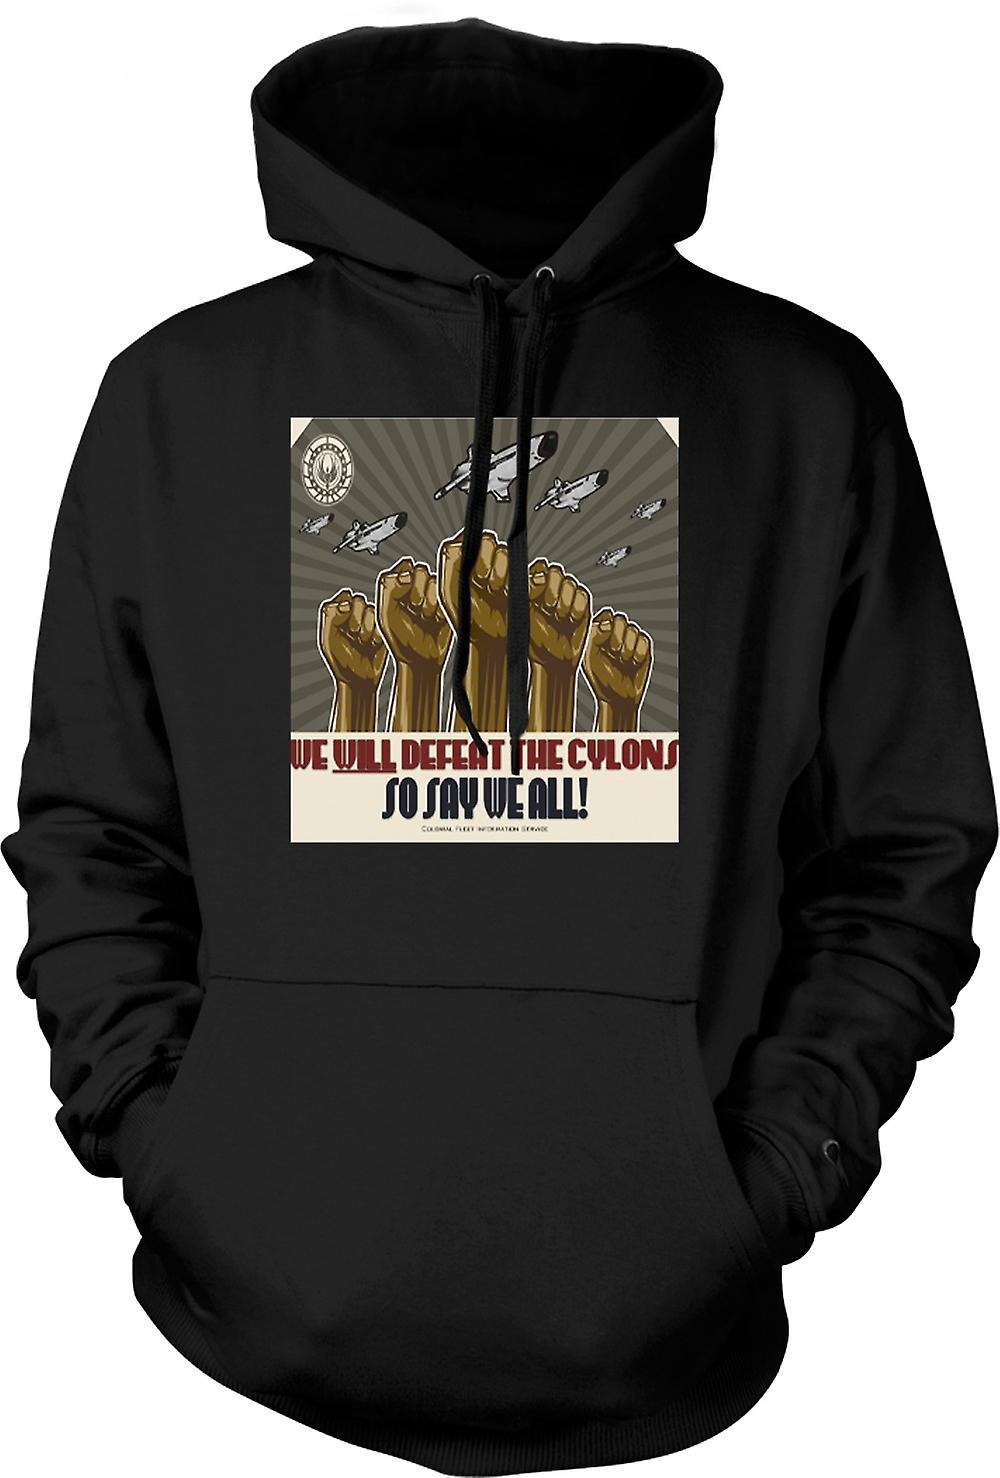 Mens Hoodie - Battlestar Gallactica Defeat Cyclons